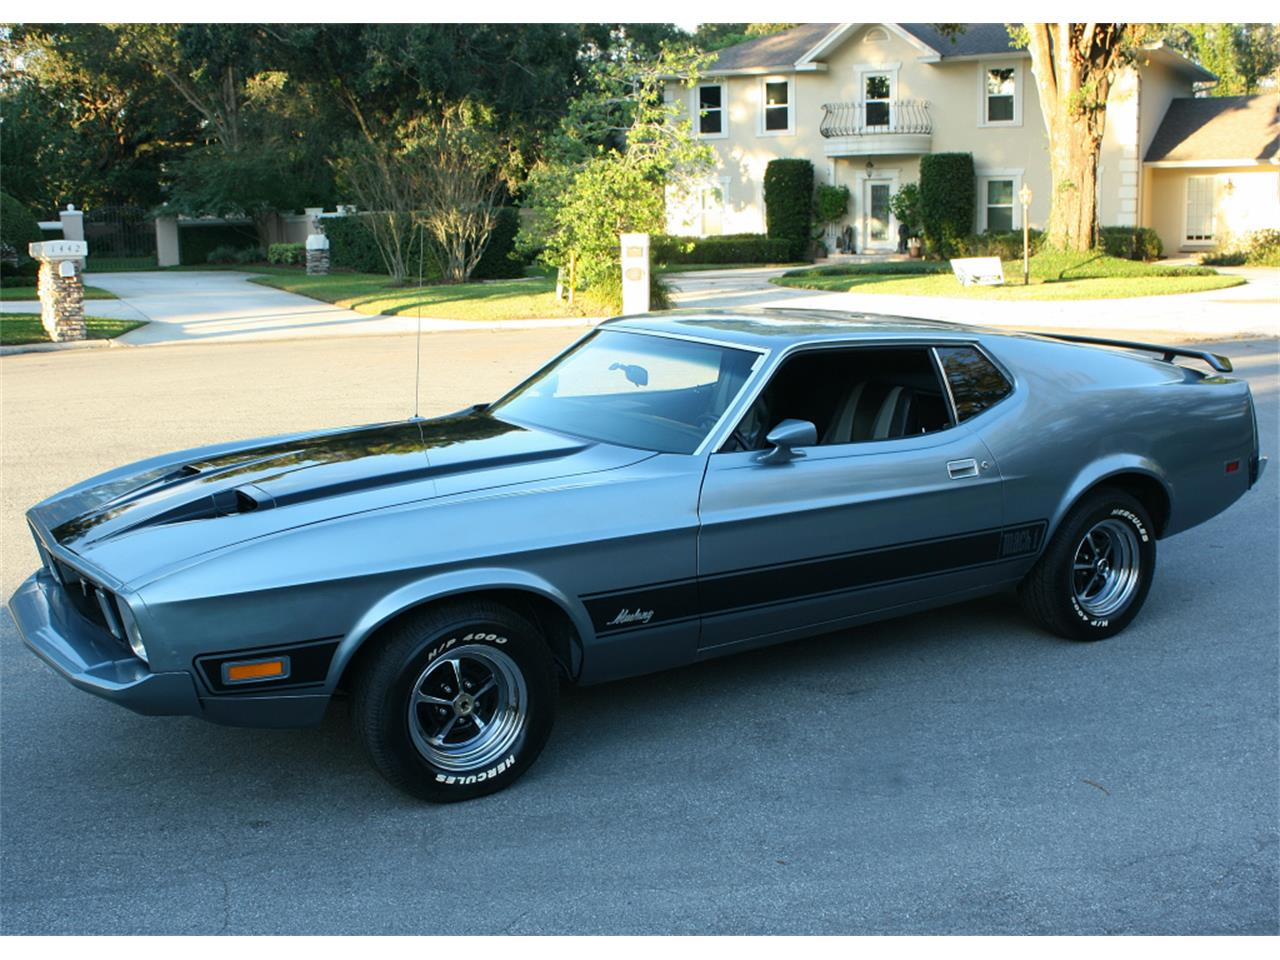 Large Picture of Classic 1973 Mustang located in Lakeland Florida - $17,500.00 Offered by MJC Classic Cars - MA11